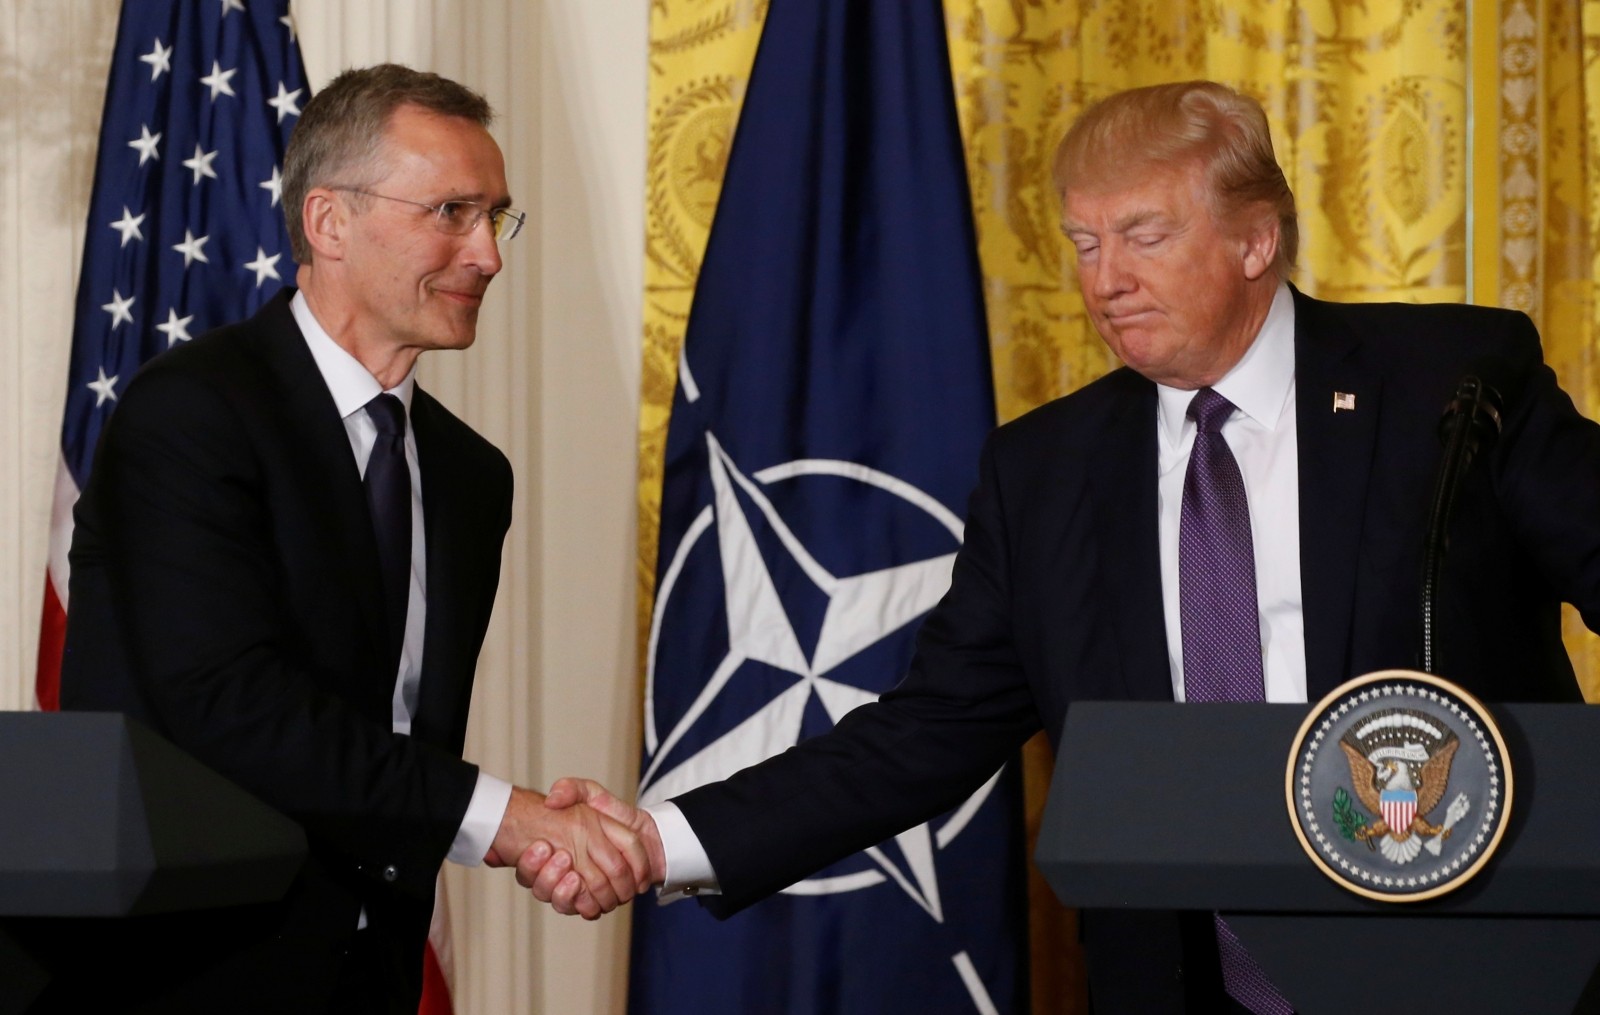 Donald Trump and Jens Stoltenberg